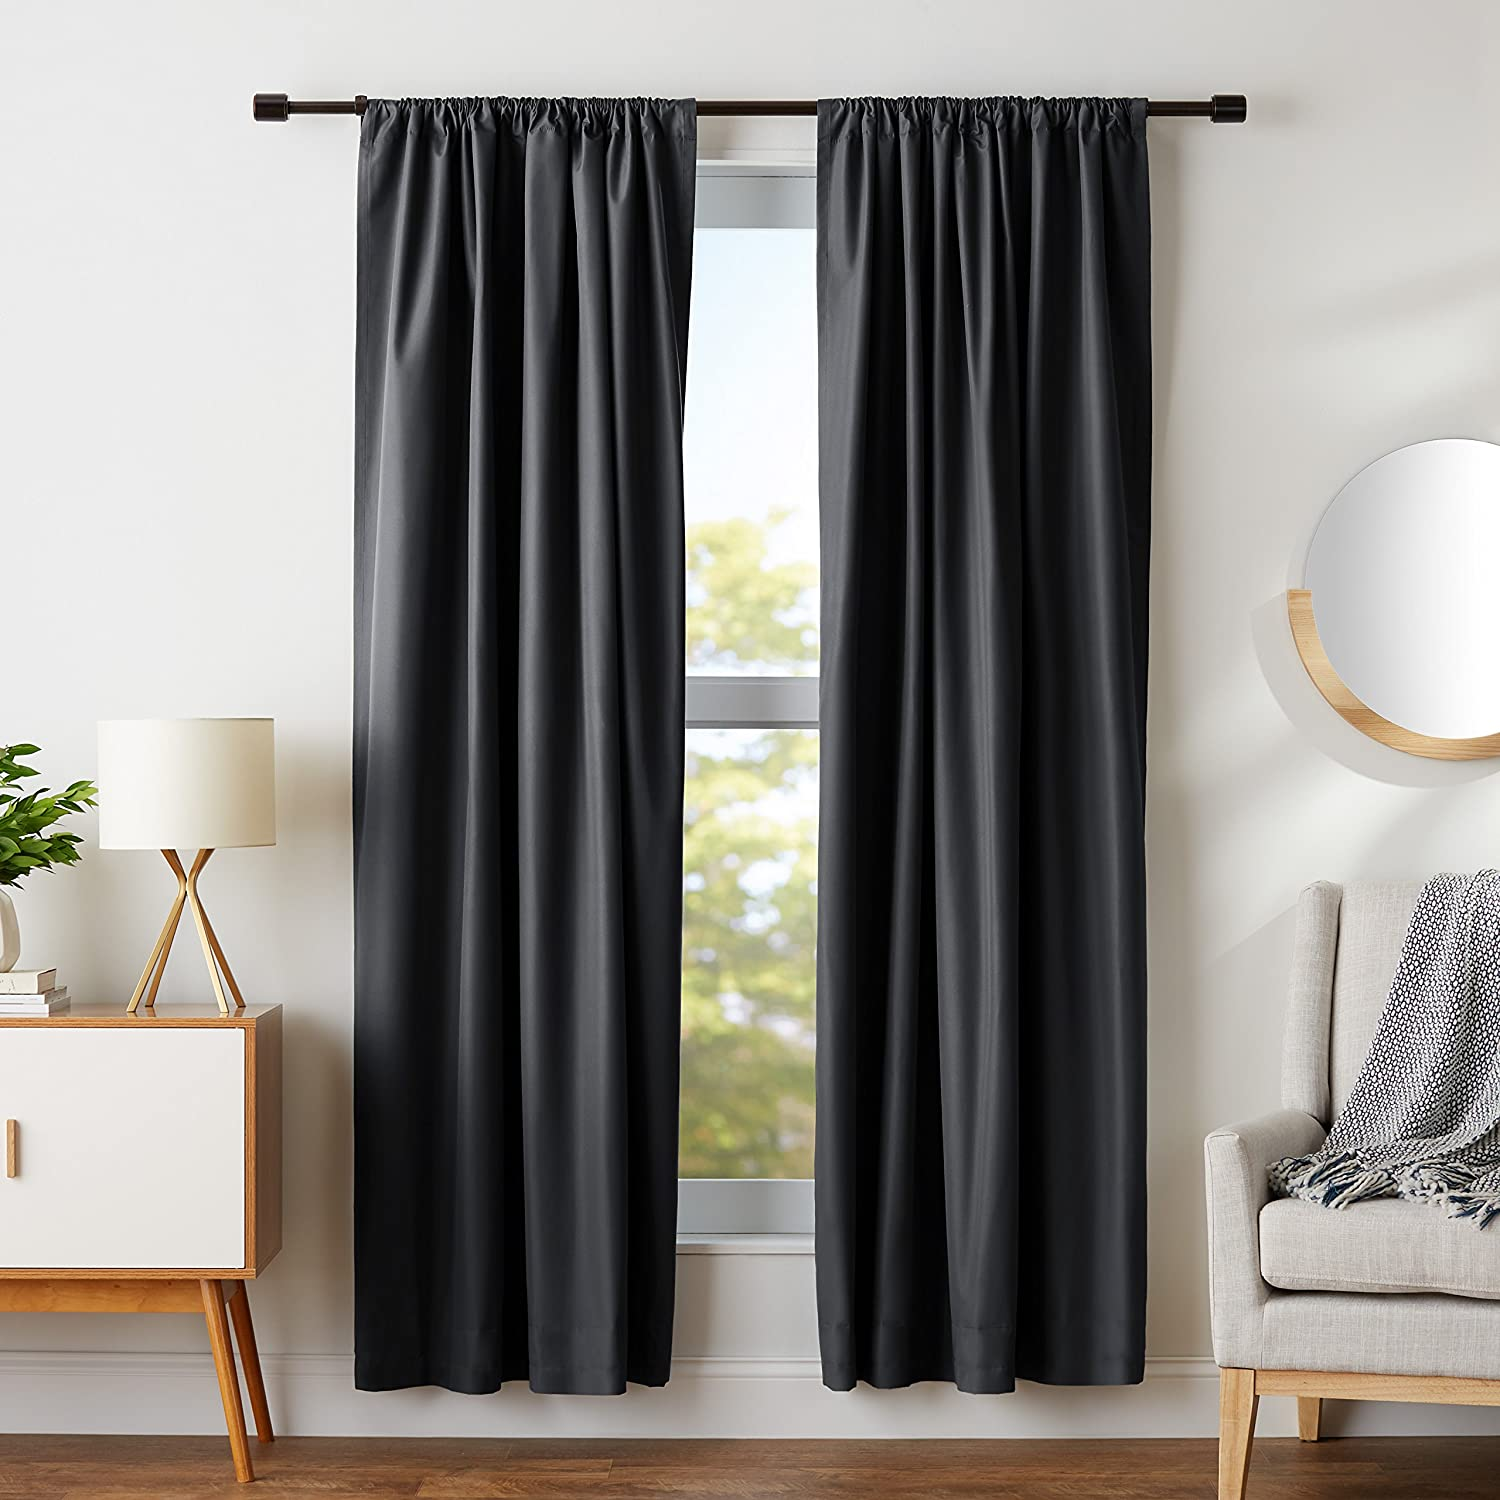 AmazonBasics Room Darkening Blackout Window Panel Curtains